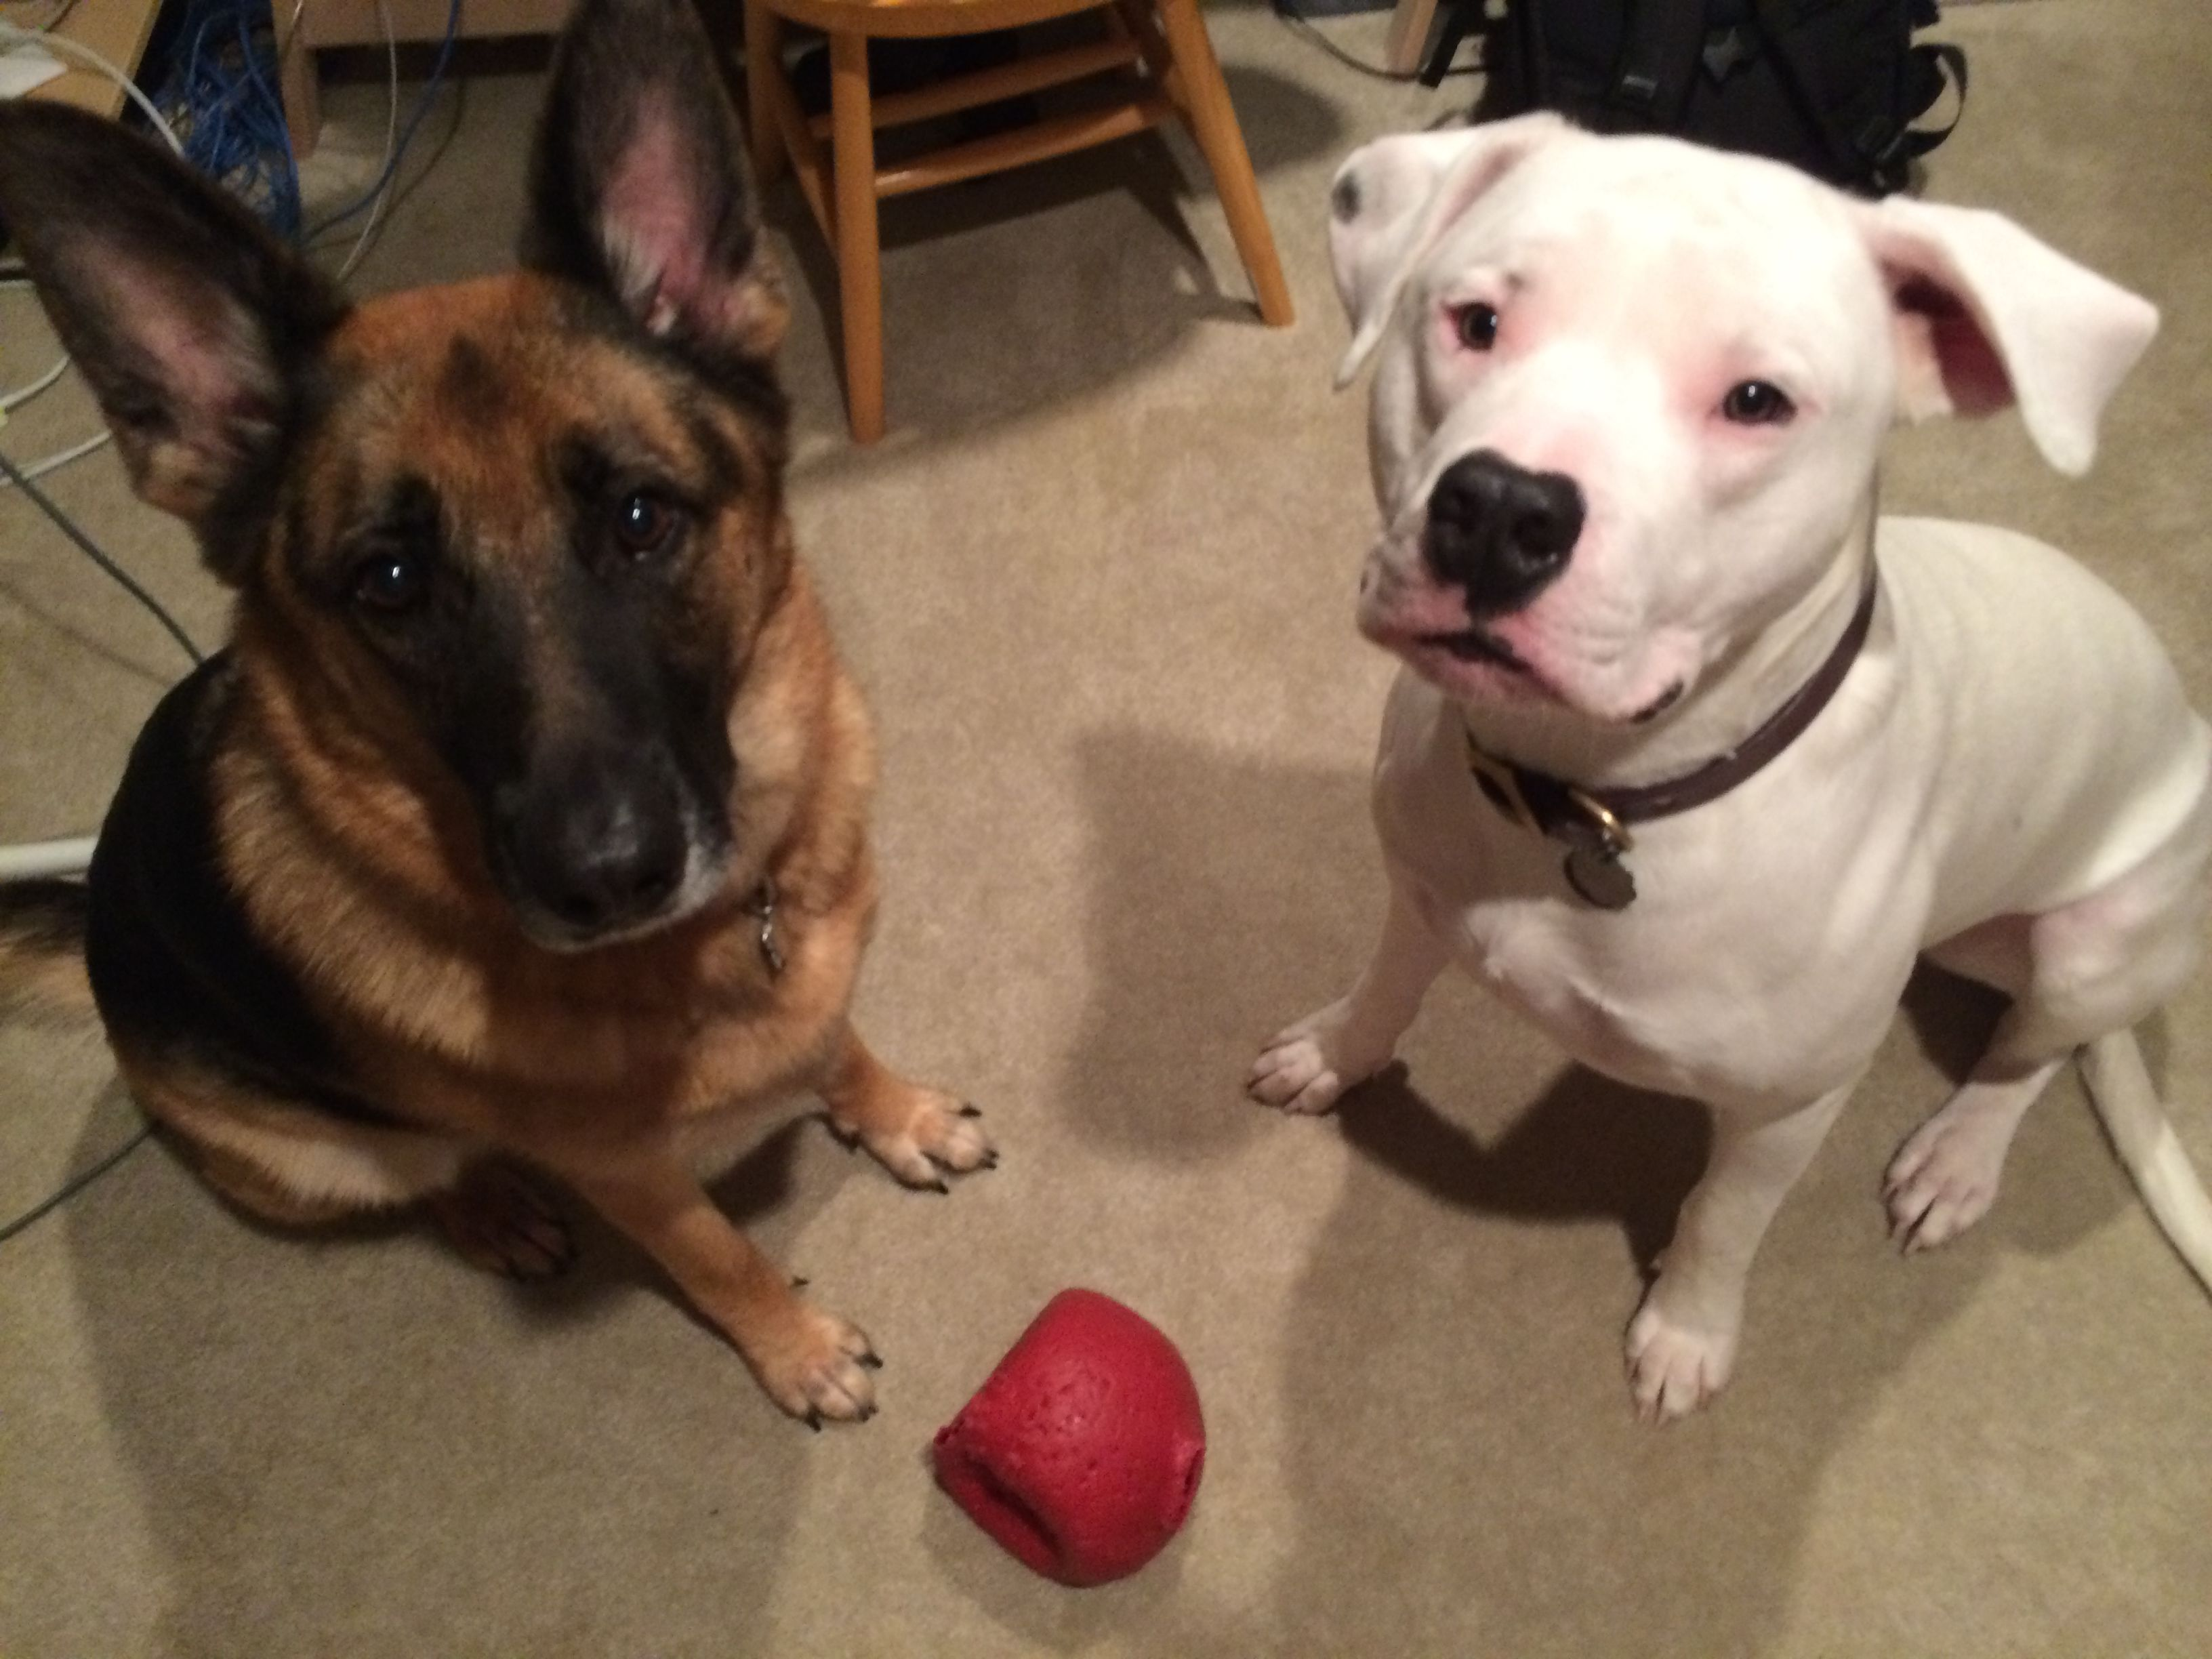 Zeke Dogo Argentino And Keira German Shepherd Love Them Both Dogo Argentino German Shepherd Animals